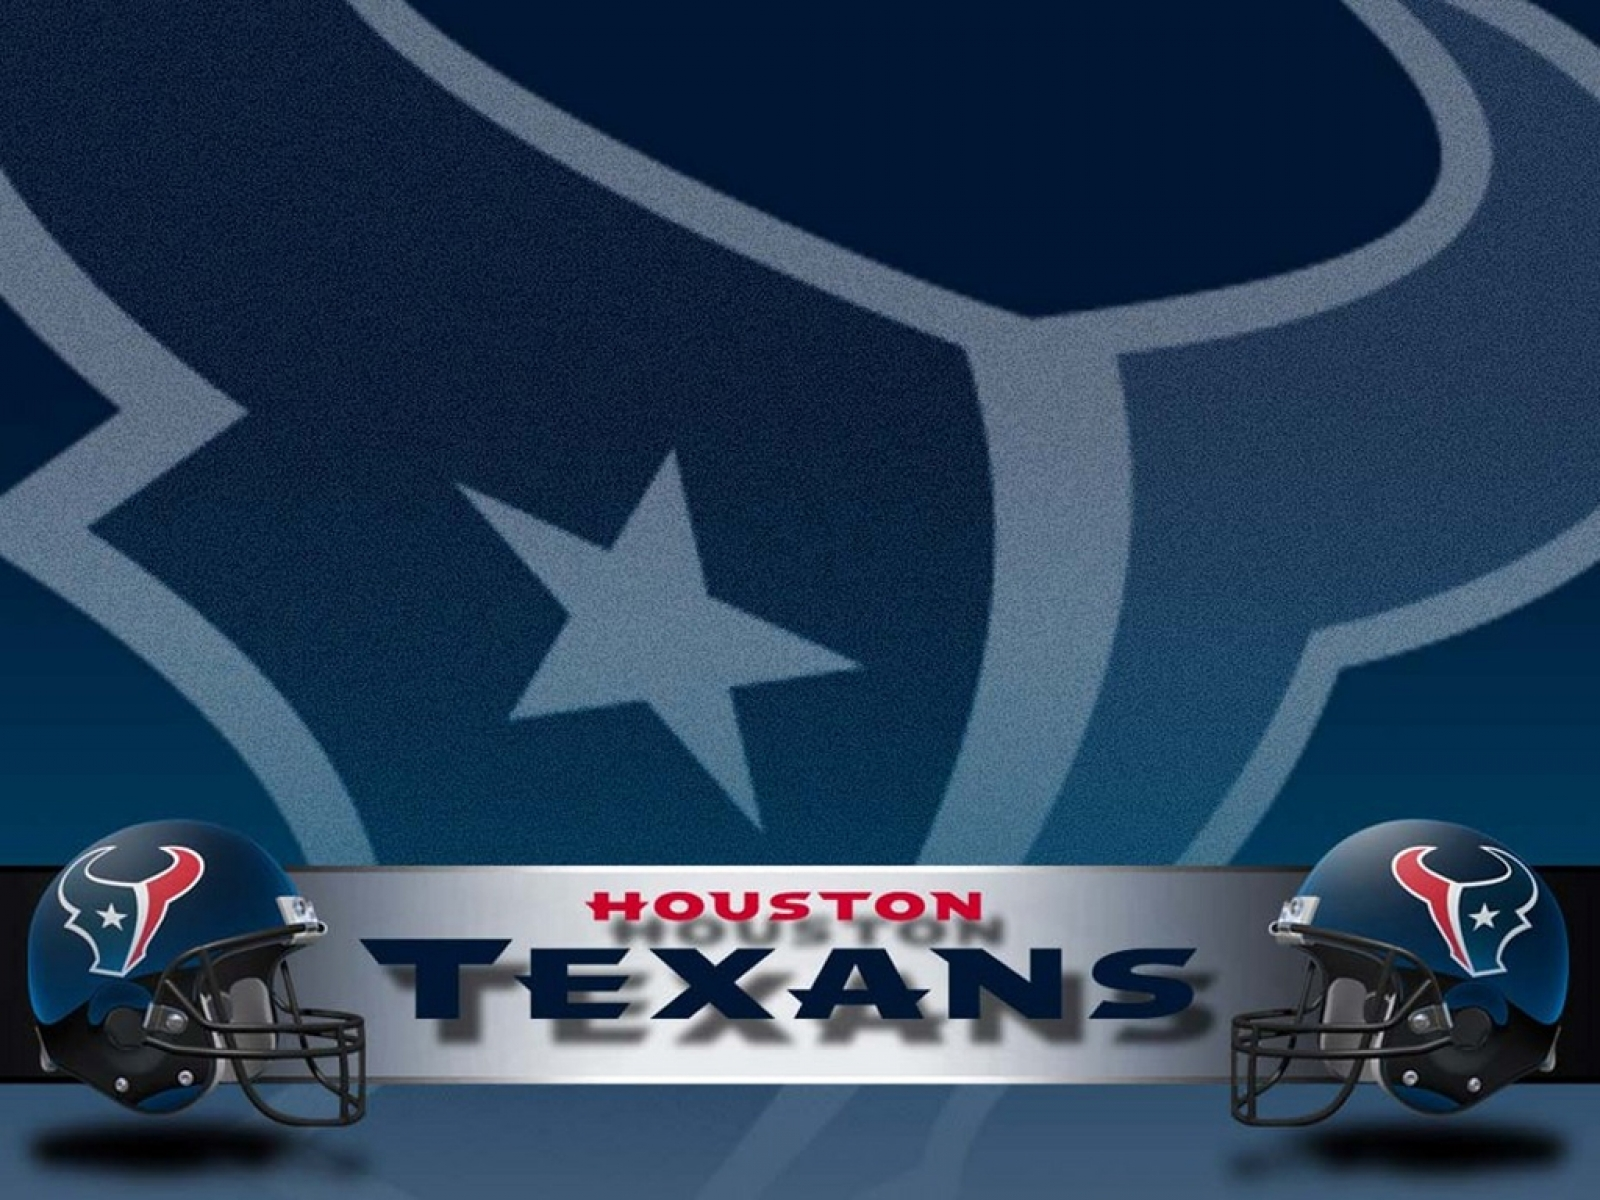 Houston Texans Wallpaper 2014 Sky HD Wallpaper 1600x1200